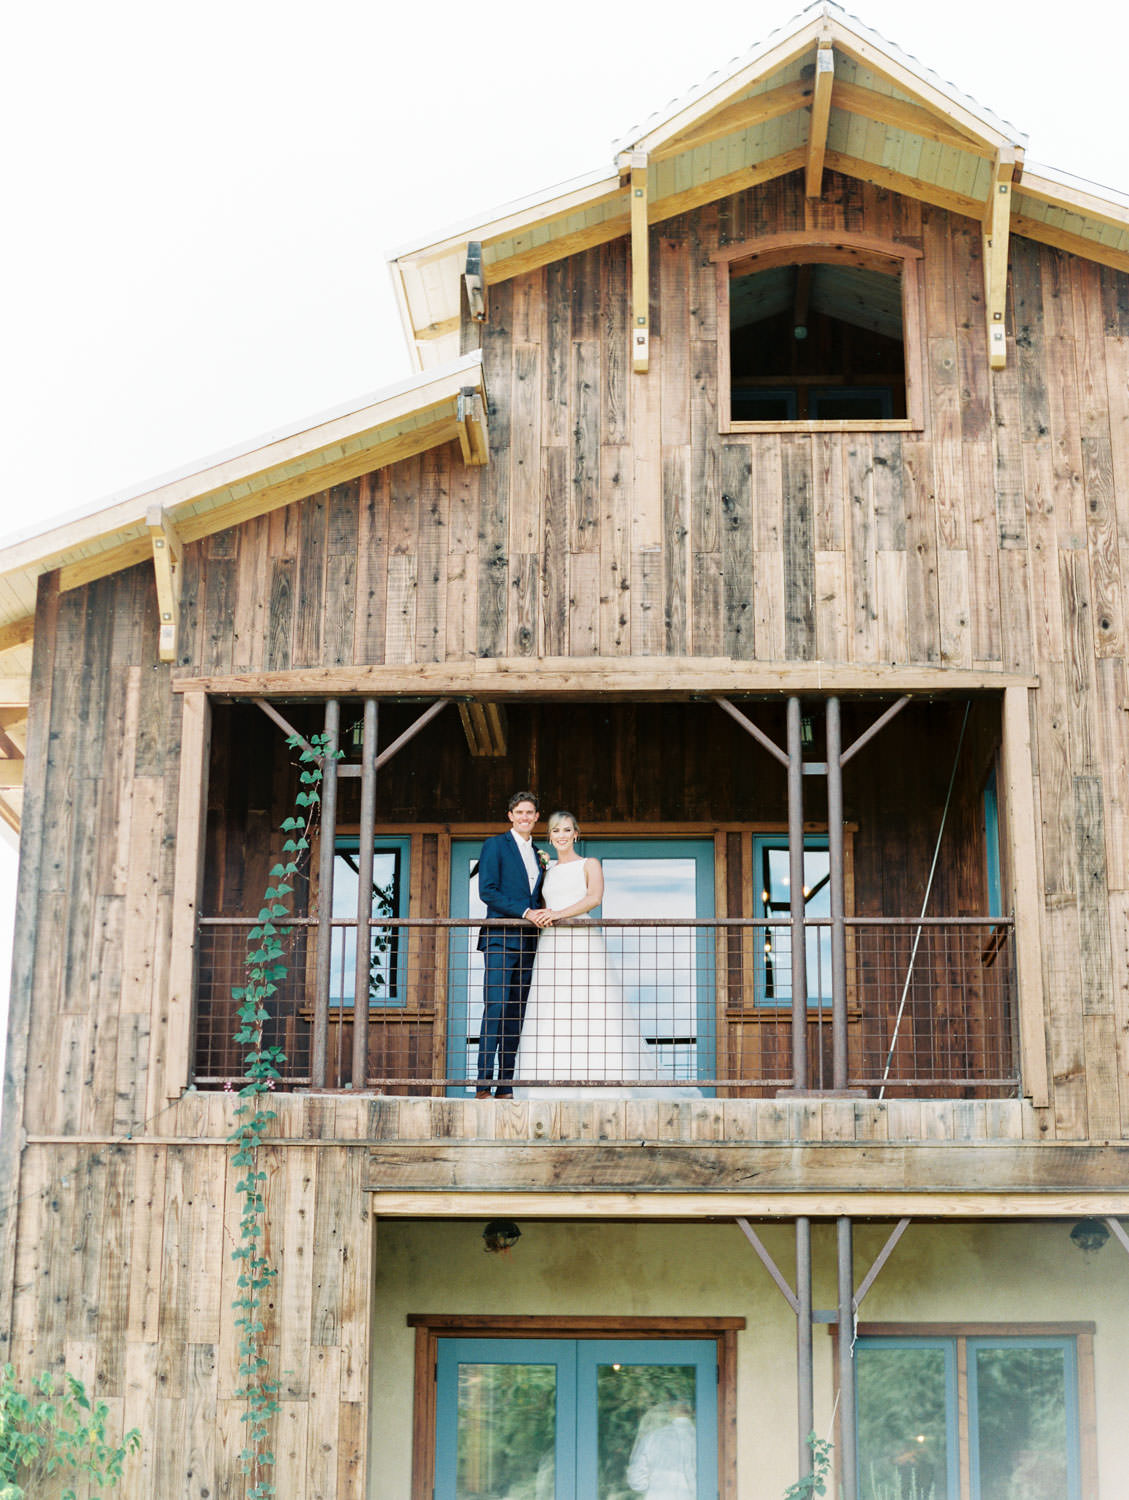 Bride in a classic Mikaella Bridal gown laughing with the groom in a navy linen suit on the balcony of the farm house. Full Belly Farm on Martha Stewart Weddings by film photographer Cavin Elizabeth Photography